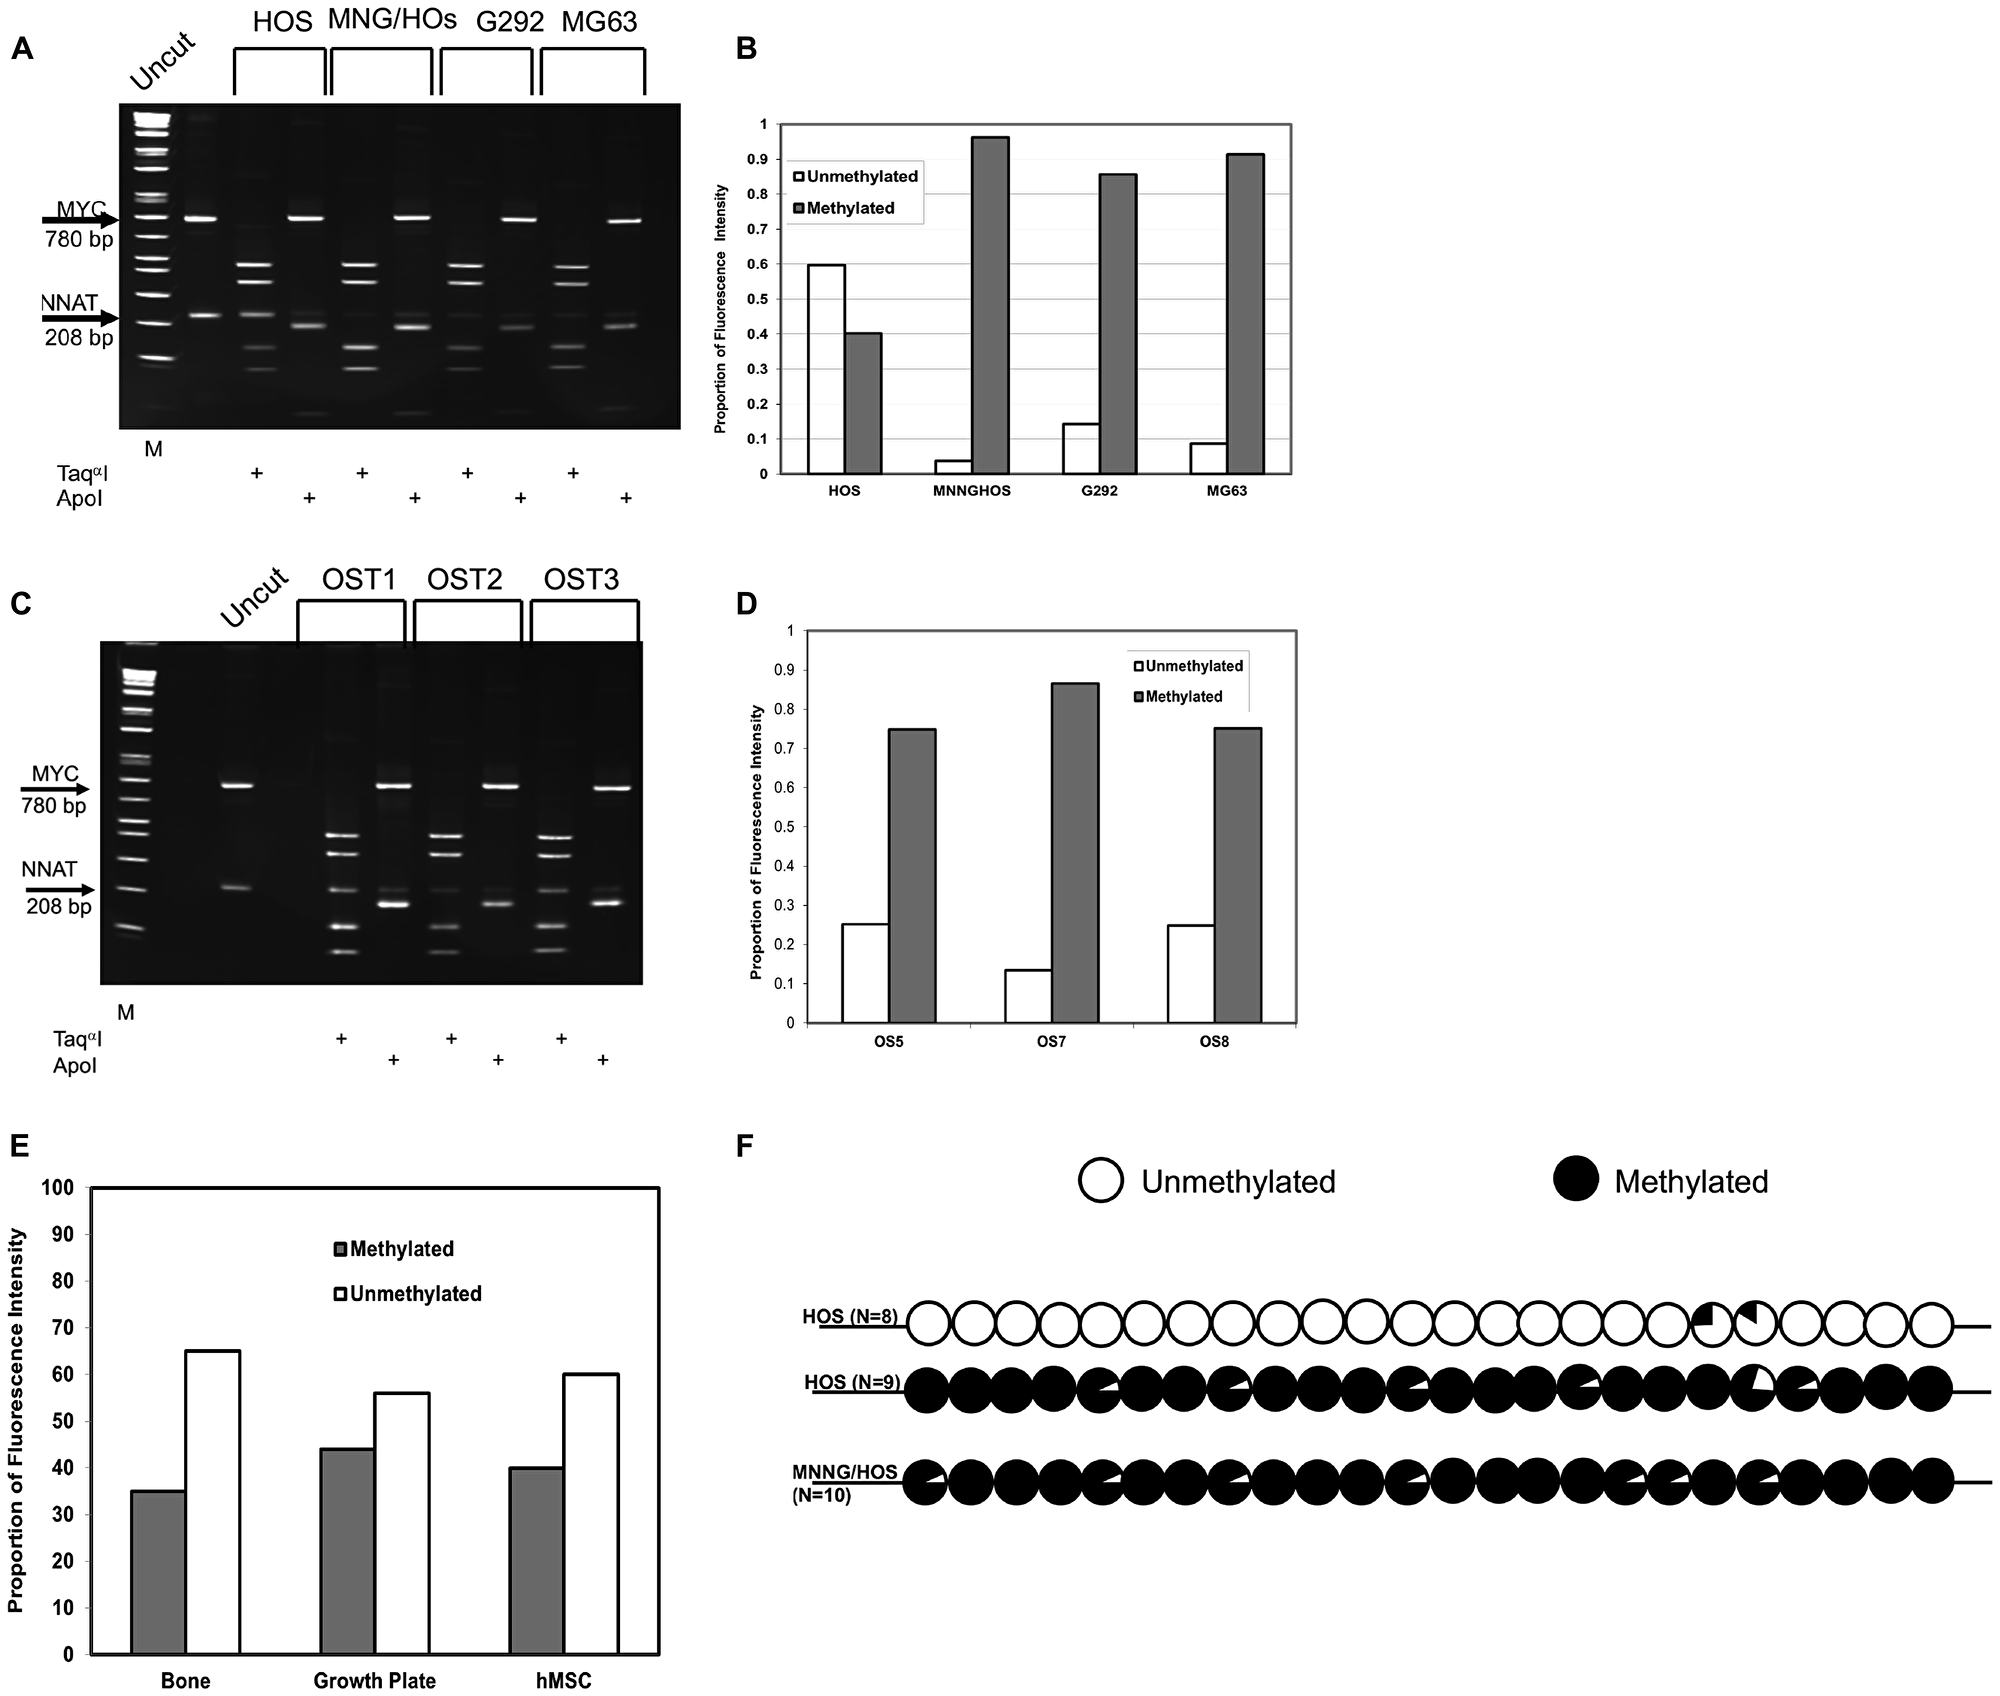 COBRA analysis demonstrates NNAT hypermethylation in osteosarcoma cell lines and primary tumor samples but not in normal bone or bone progenitors.